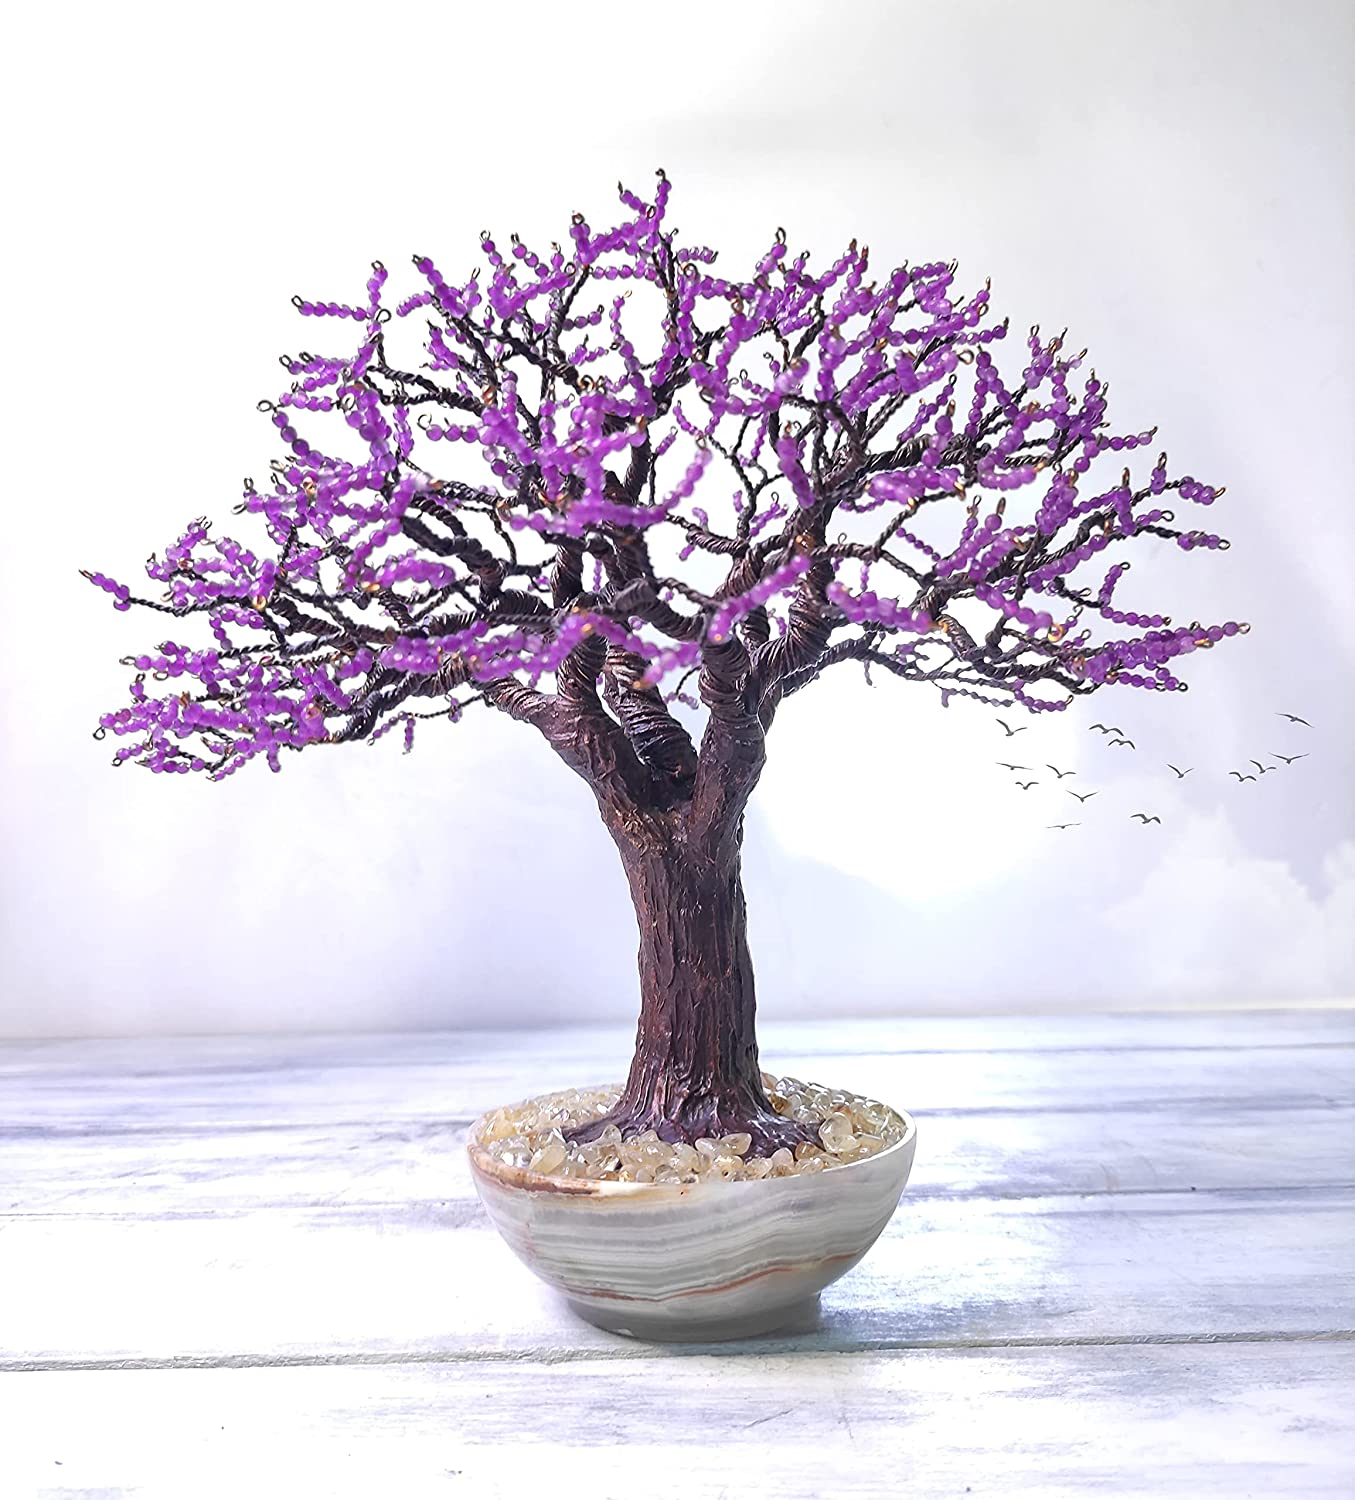 Beaded wire tree gemstone bonsai purple List price bea Free shipping anywhere in the nation with agates faceted